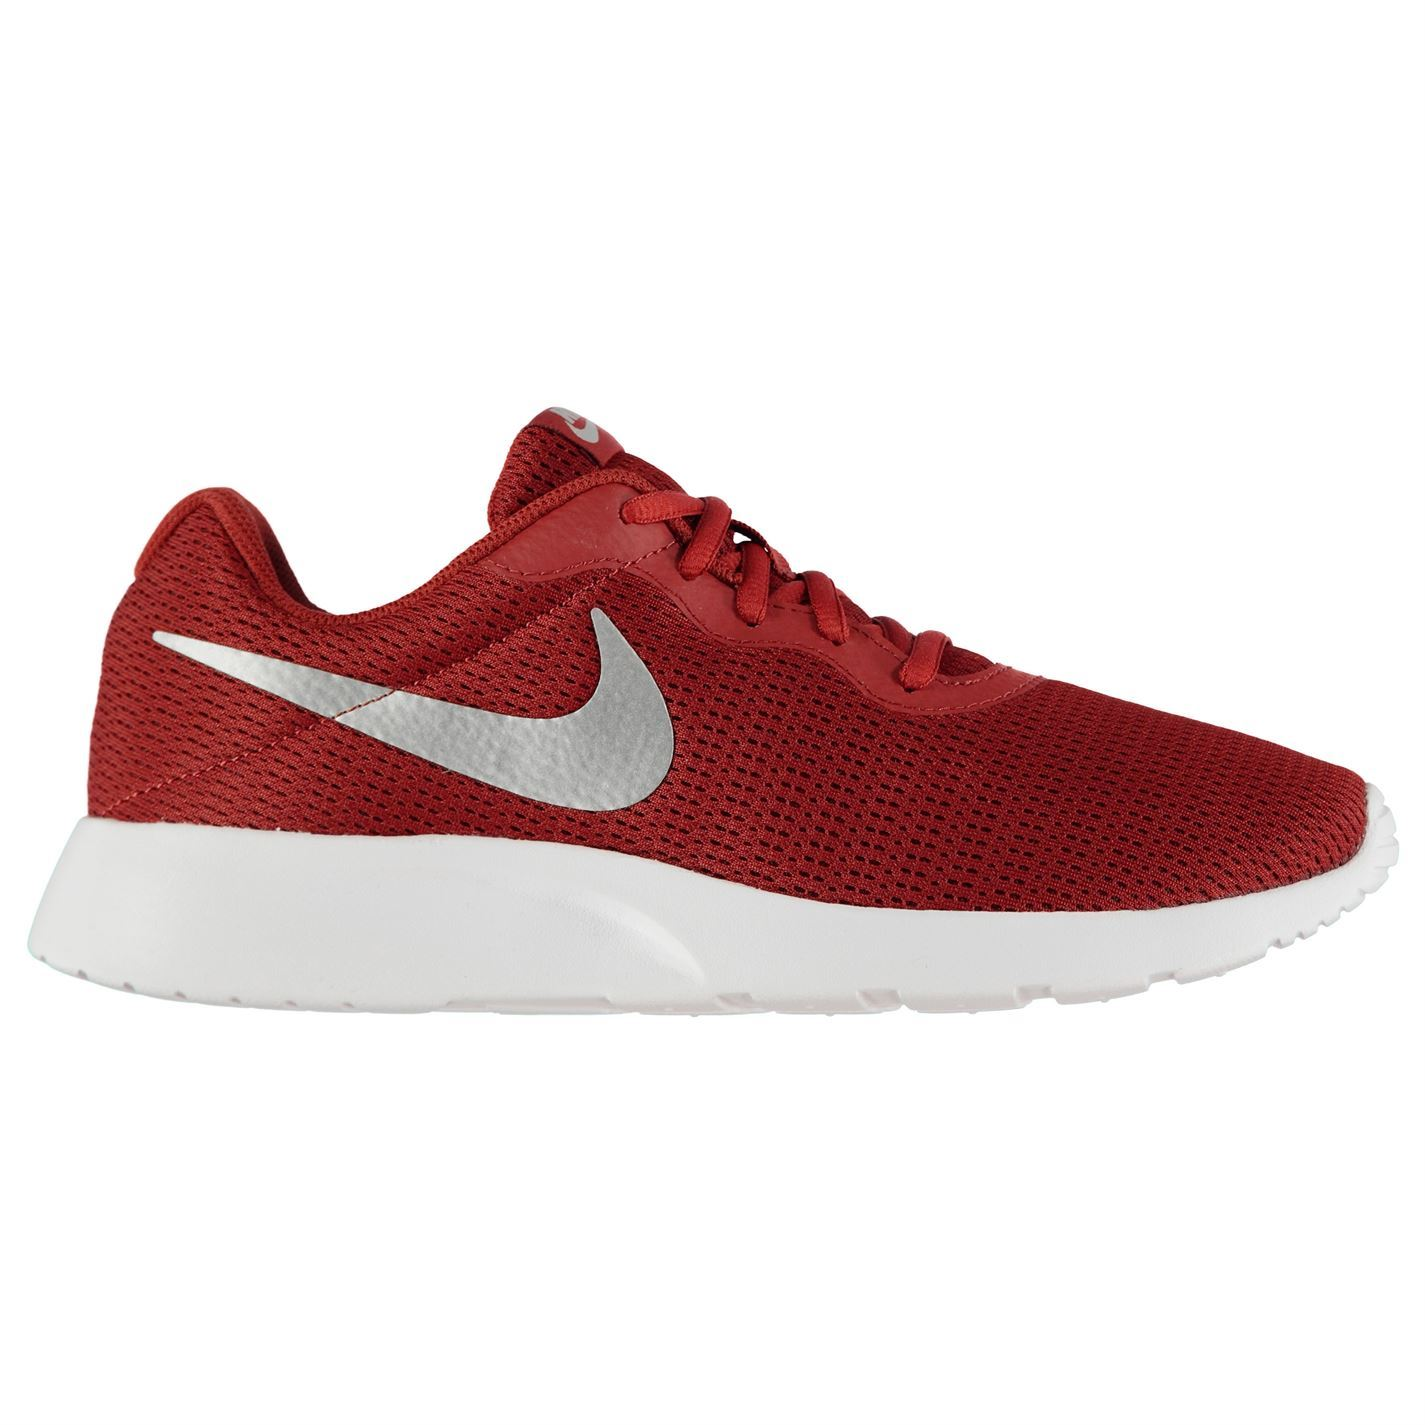 promo code shoes for cheap various design Nike Tanjun Running Shoes Mens Fitness Jogging Trainers Sneakers ...